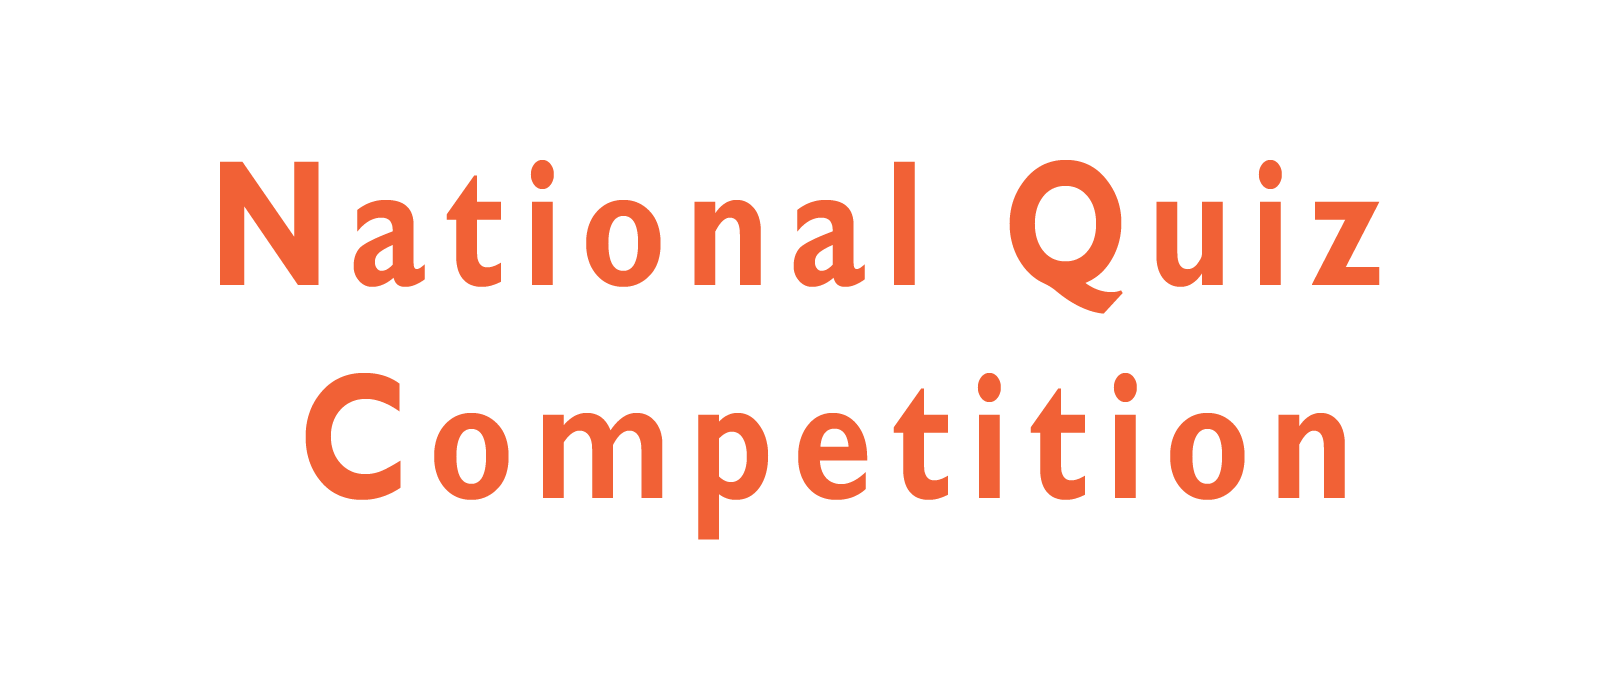 National Quiz Competition